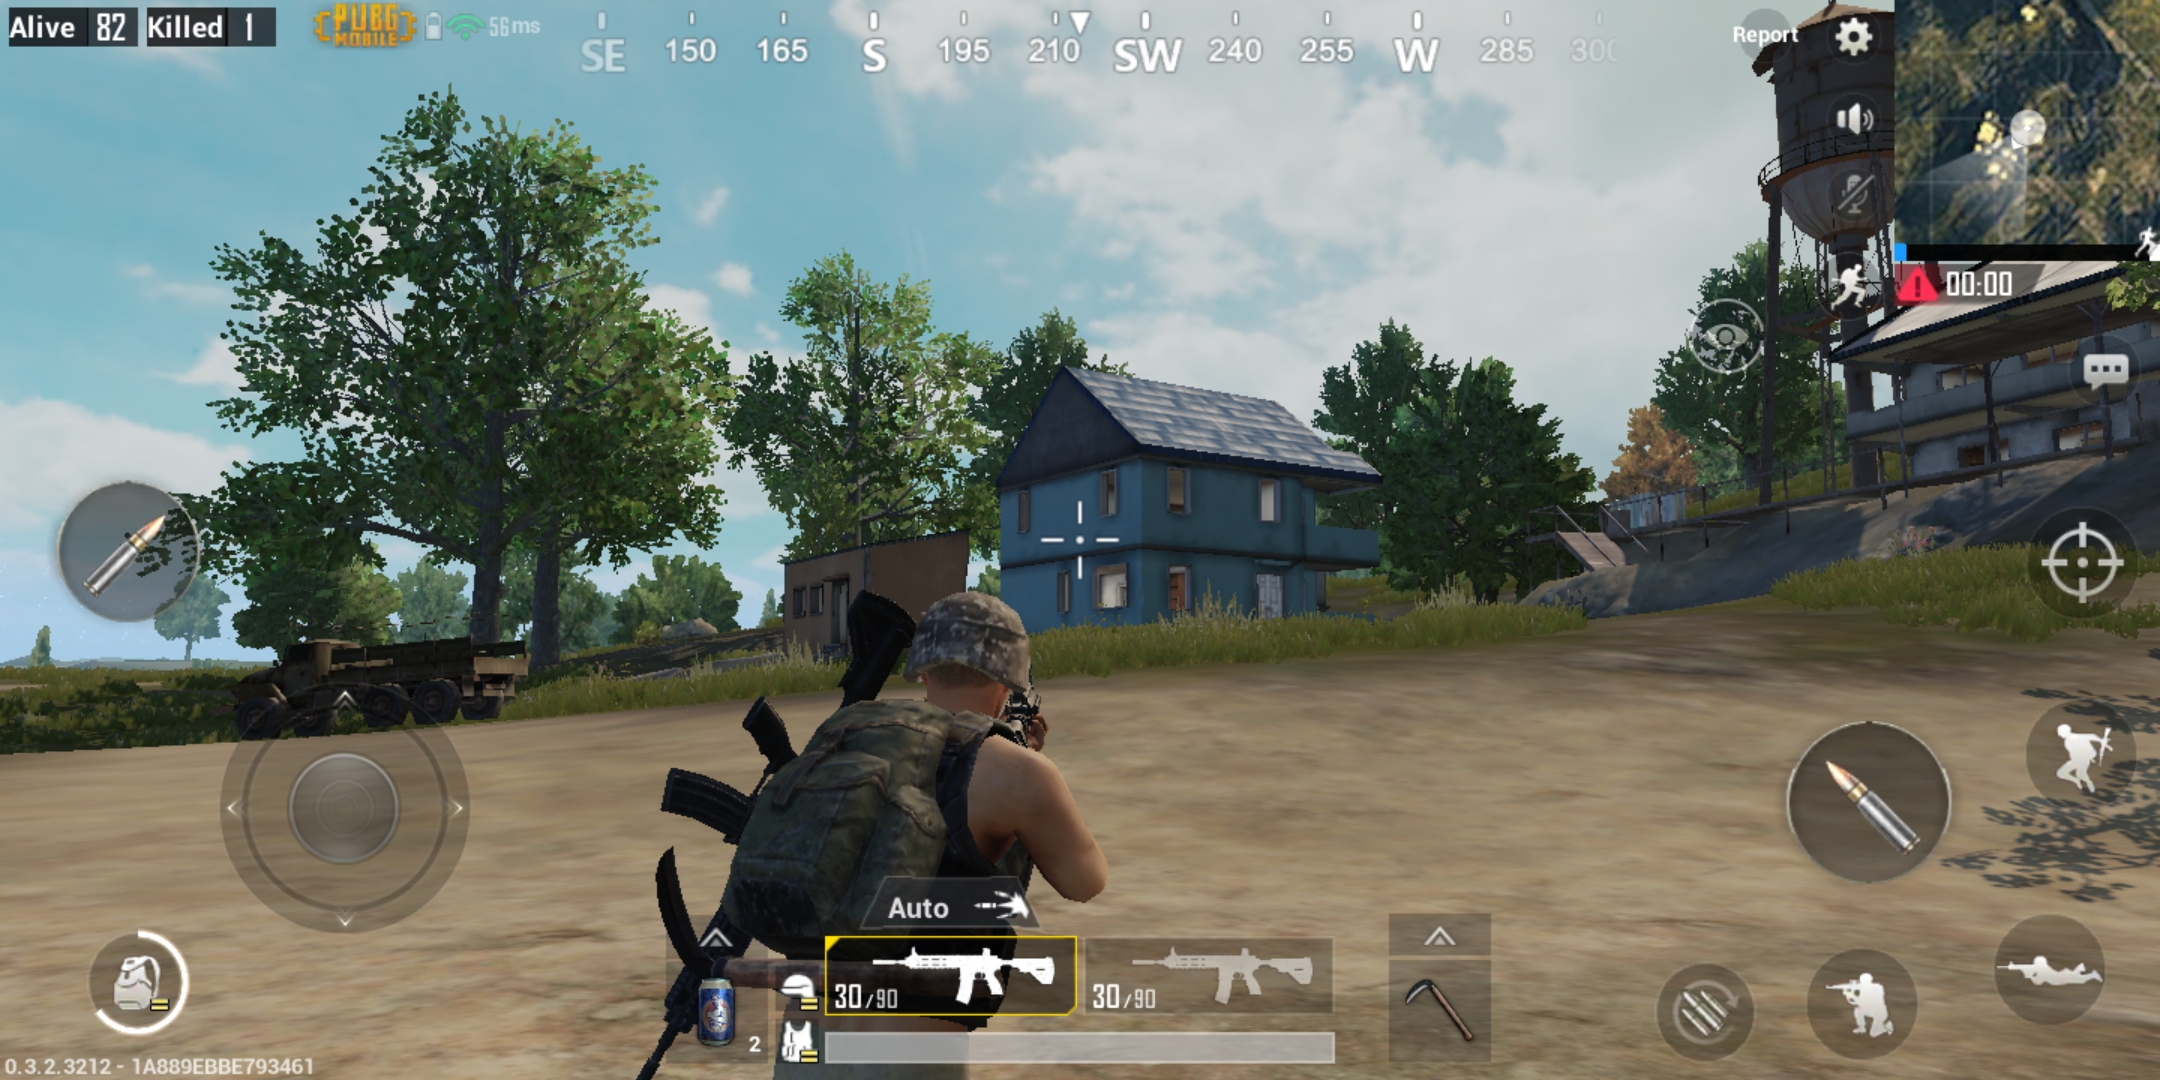 PUBG Mobile Users Are Turning To Keyboard/Mouse Input To